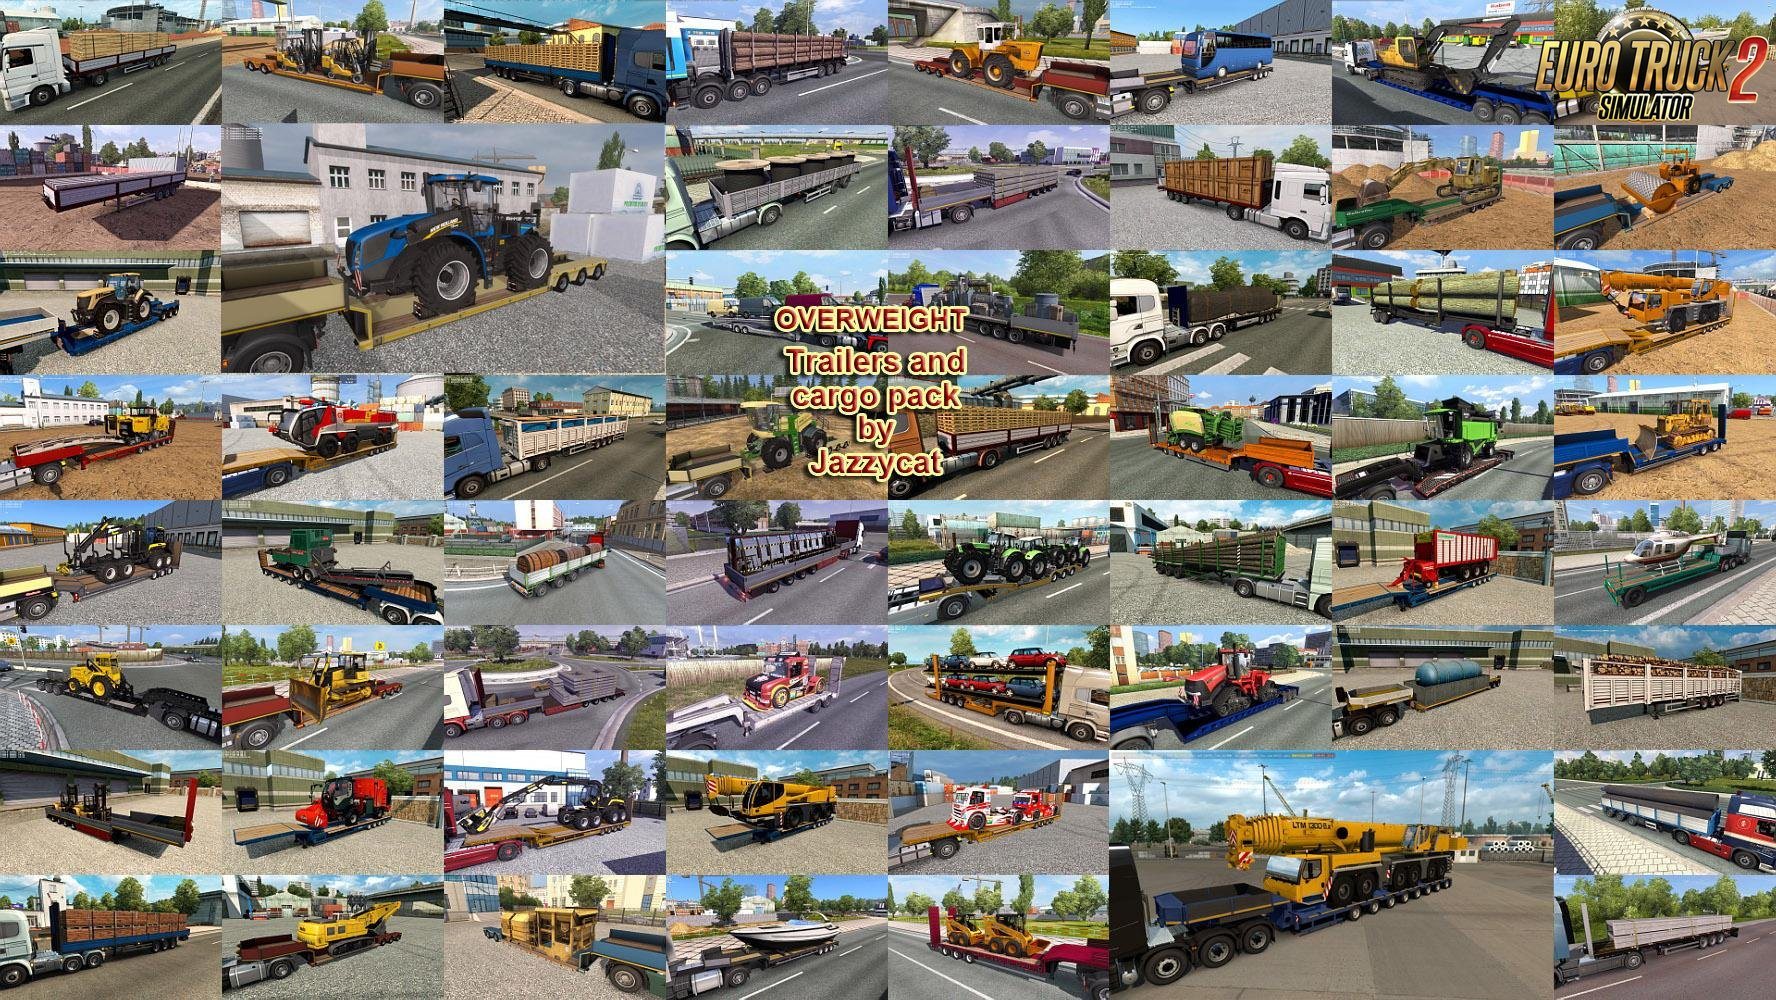 Overweight Trailers and Cargo Pack v7.0 by Jazzycat